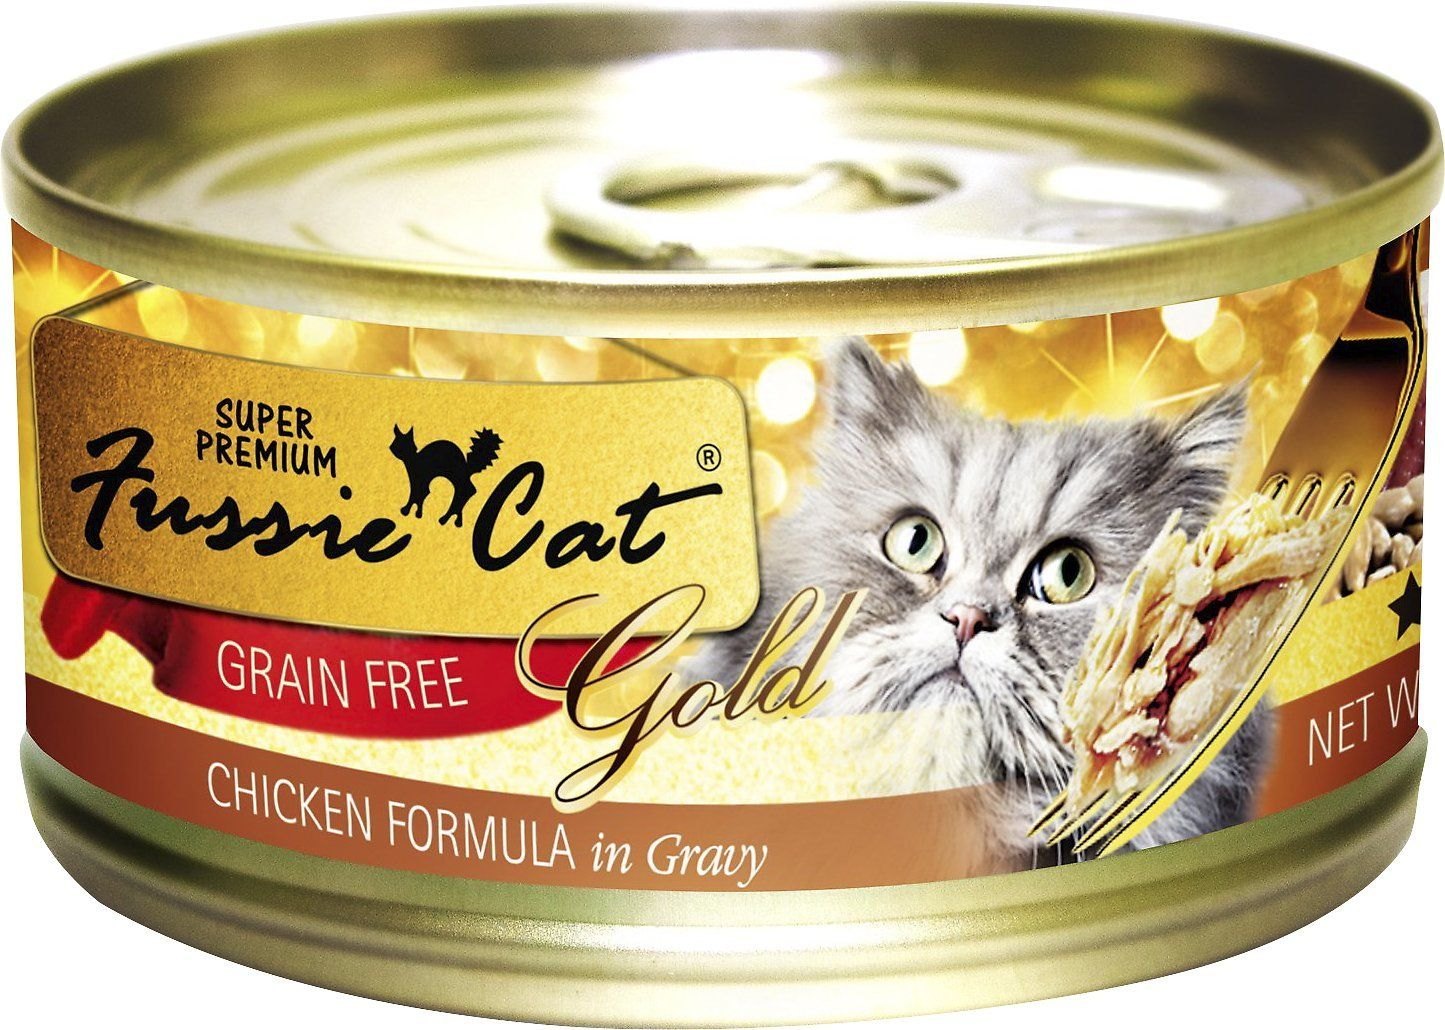 Fussie cat chicken and gravy 3oz Products Canned cat